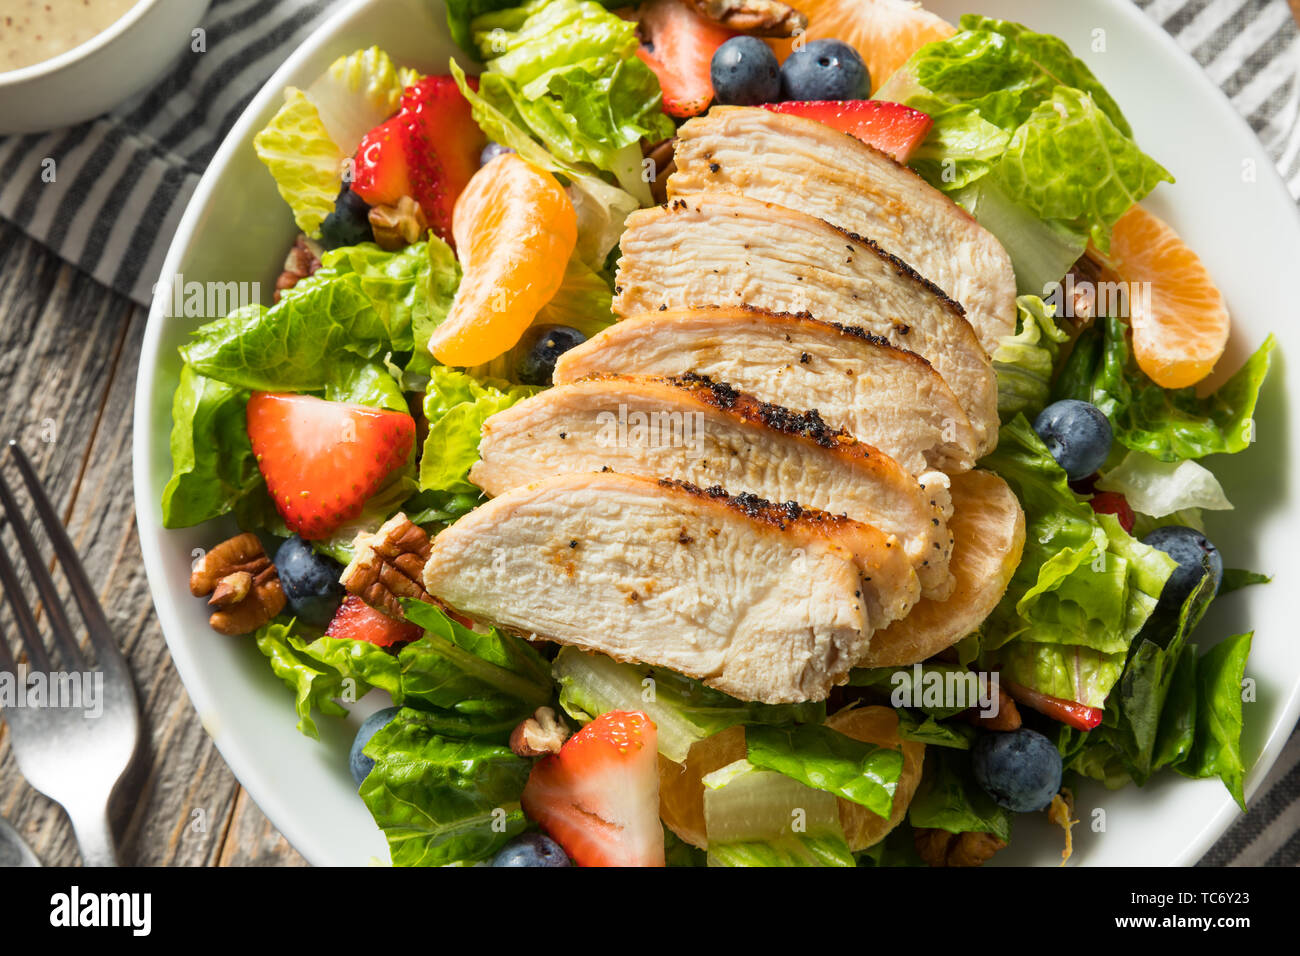 Healthy Homemade Strawberry Poppyseed Salad with Chicken - Stock Image